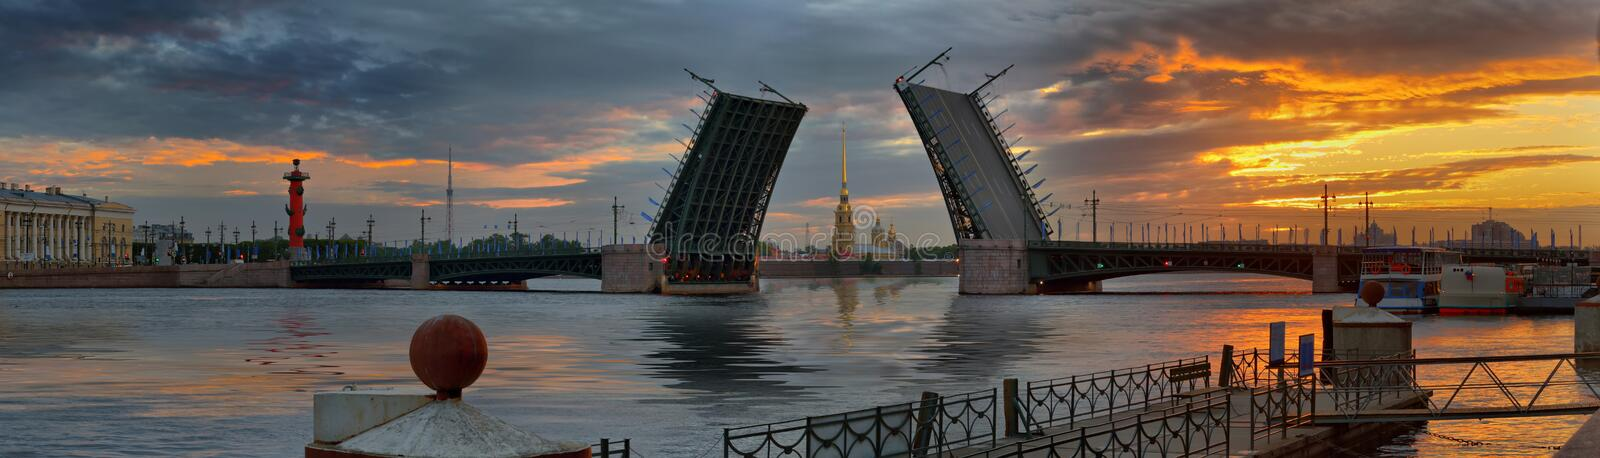 Dawn over Neva en bruggen in St. Petersburg stock fotografie